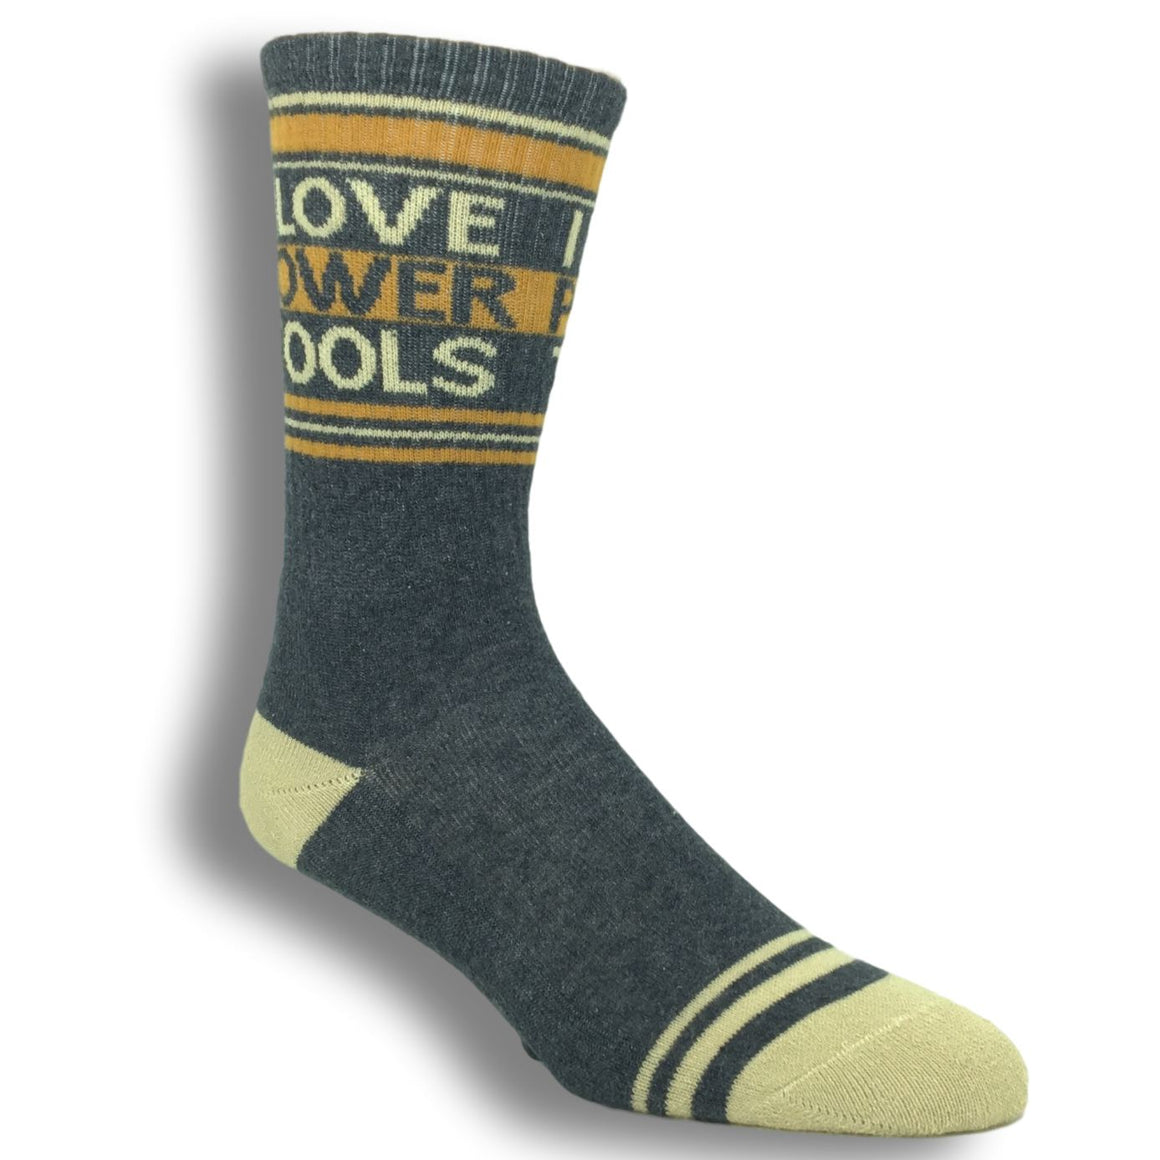 """I Love Power Tools"" Athletic Socks Made in the USA by Gumball Poodle - The Sock Spot"